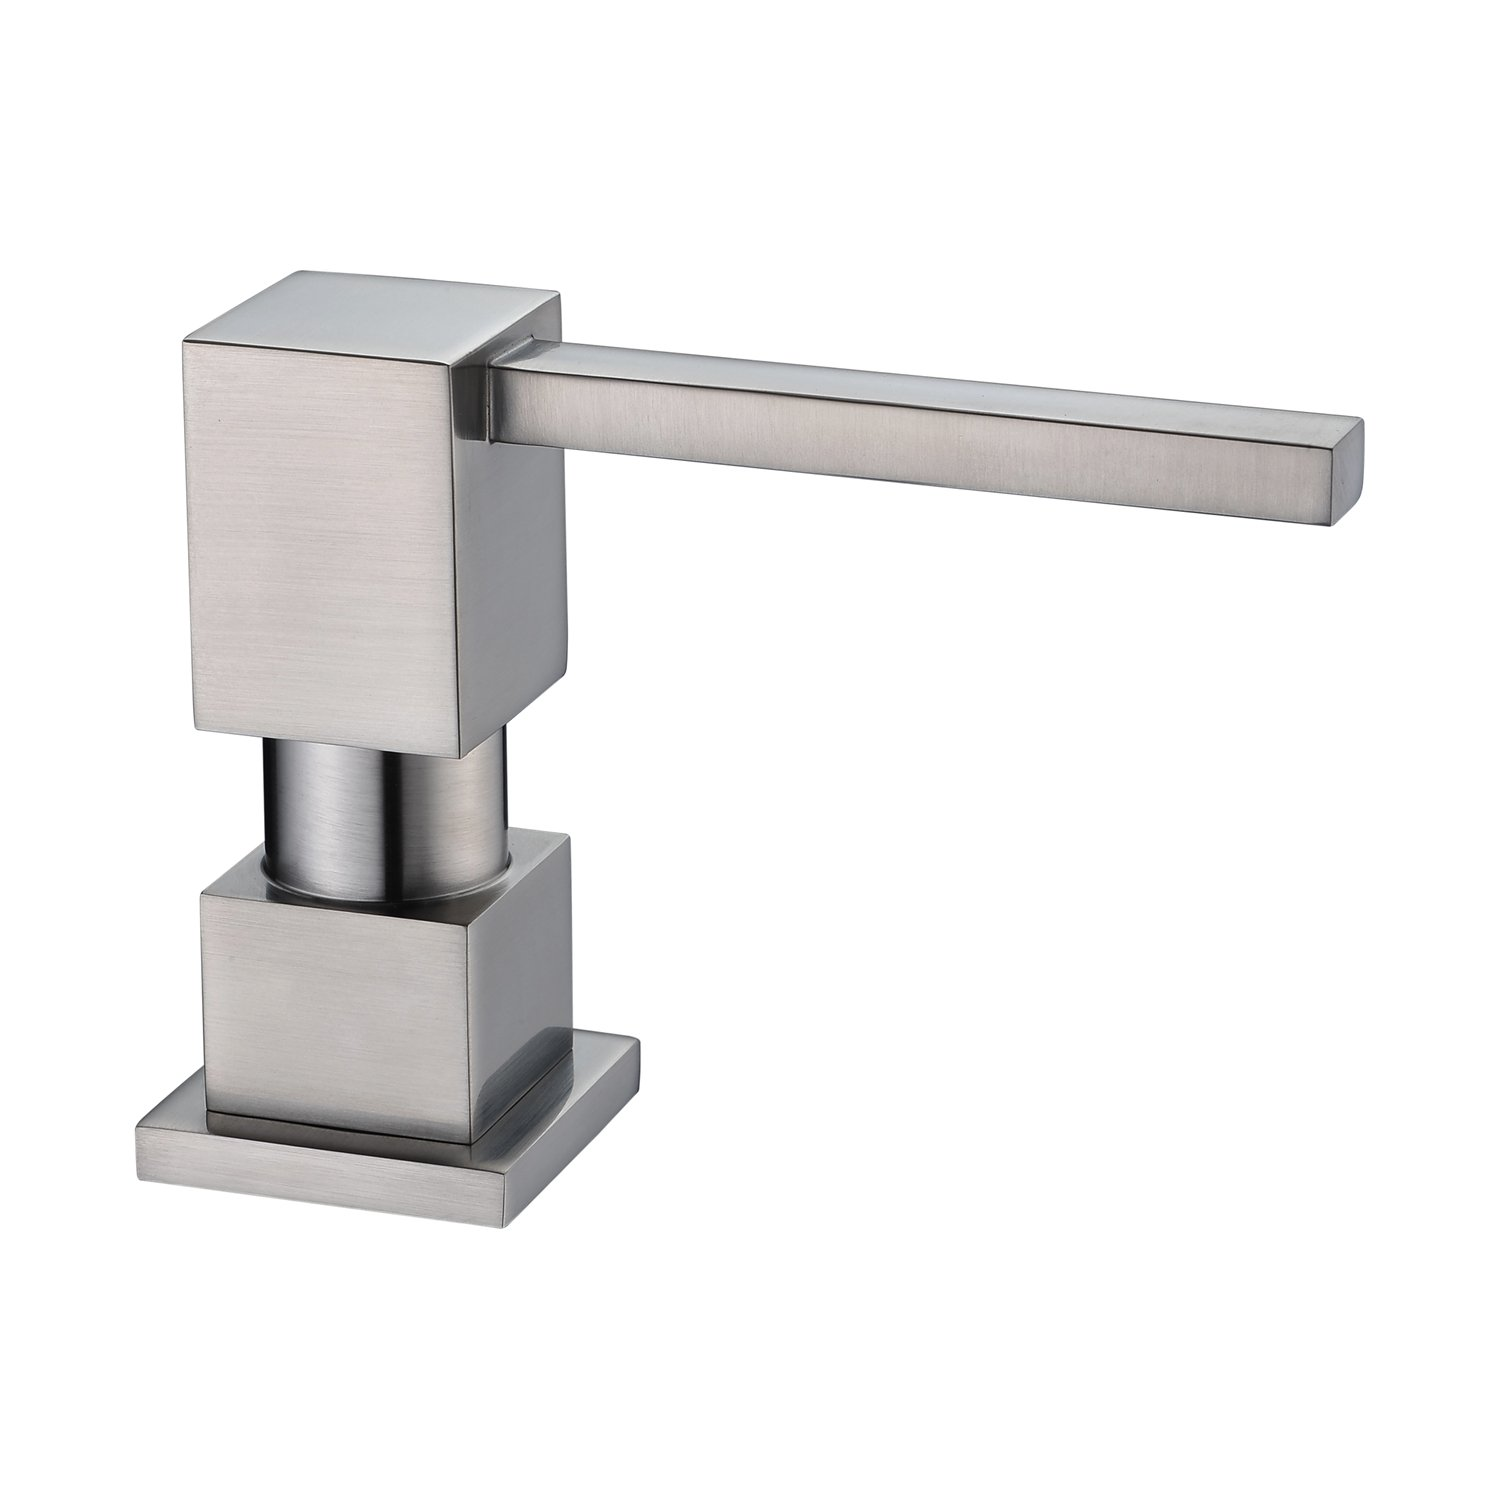 LAZADA Contemporary Design Kitchen Sink Countertop Soap Dispenser, Built in Hand Soap Dispenser Pump Brushed Nickel